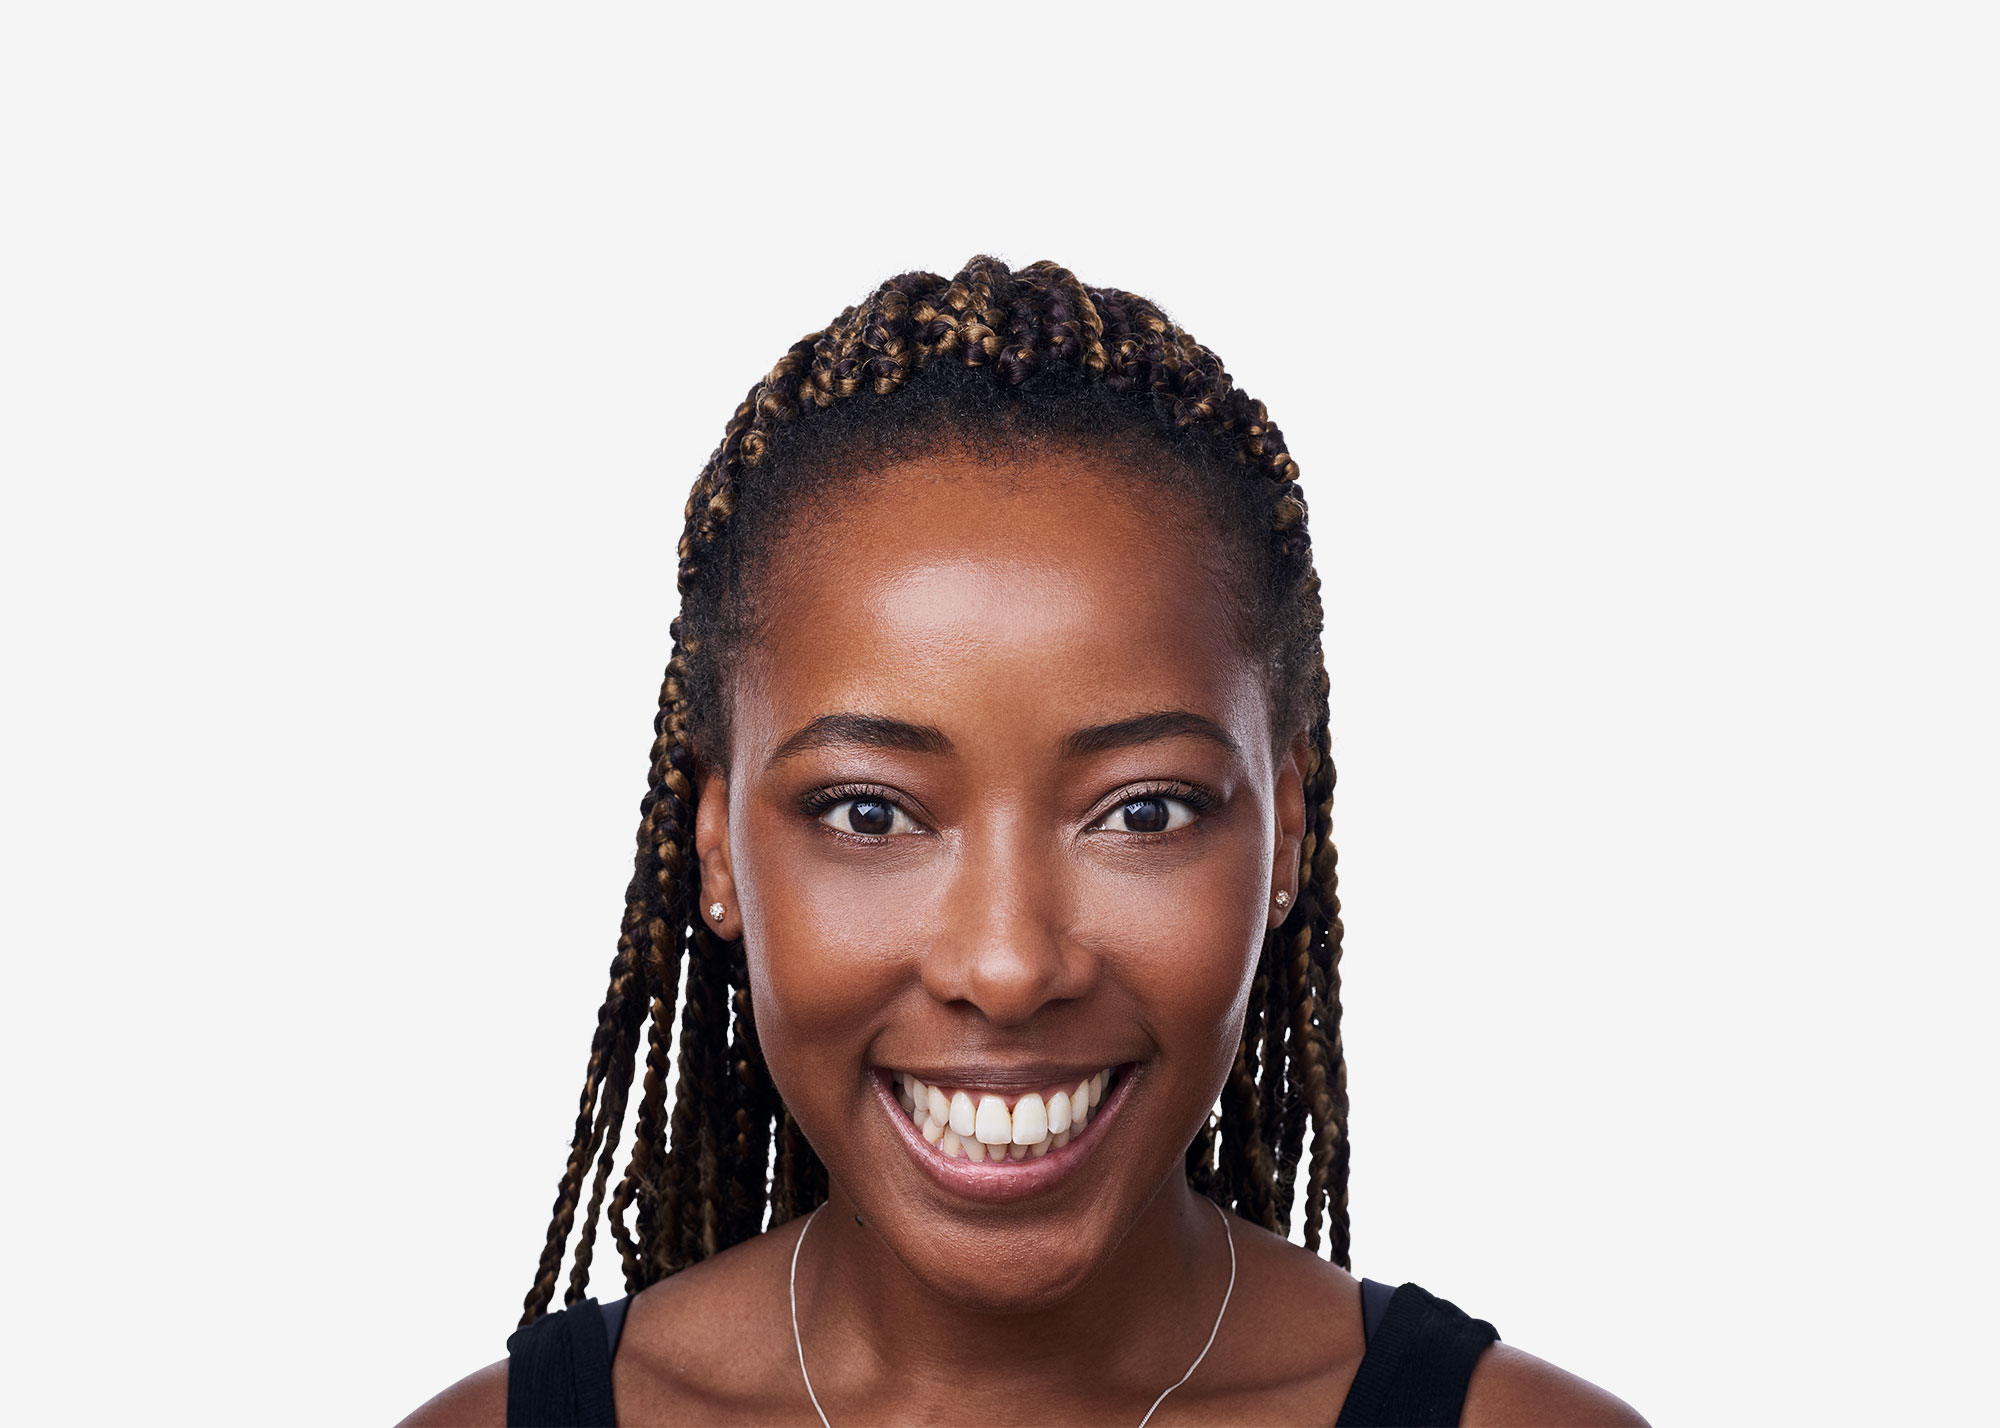 Waldo-contact-lenses-see-the-happiness-campaign-black-girl-smiling-sane-seven-2000px-wide